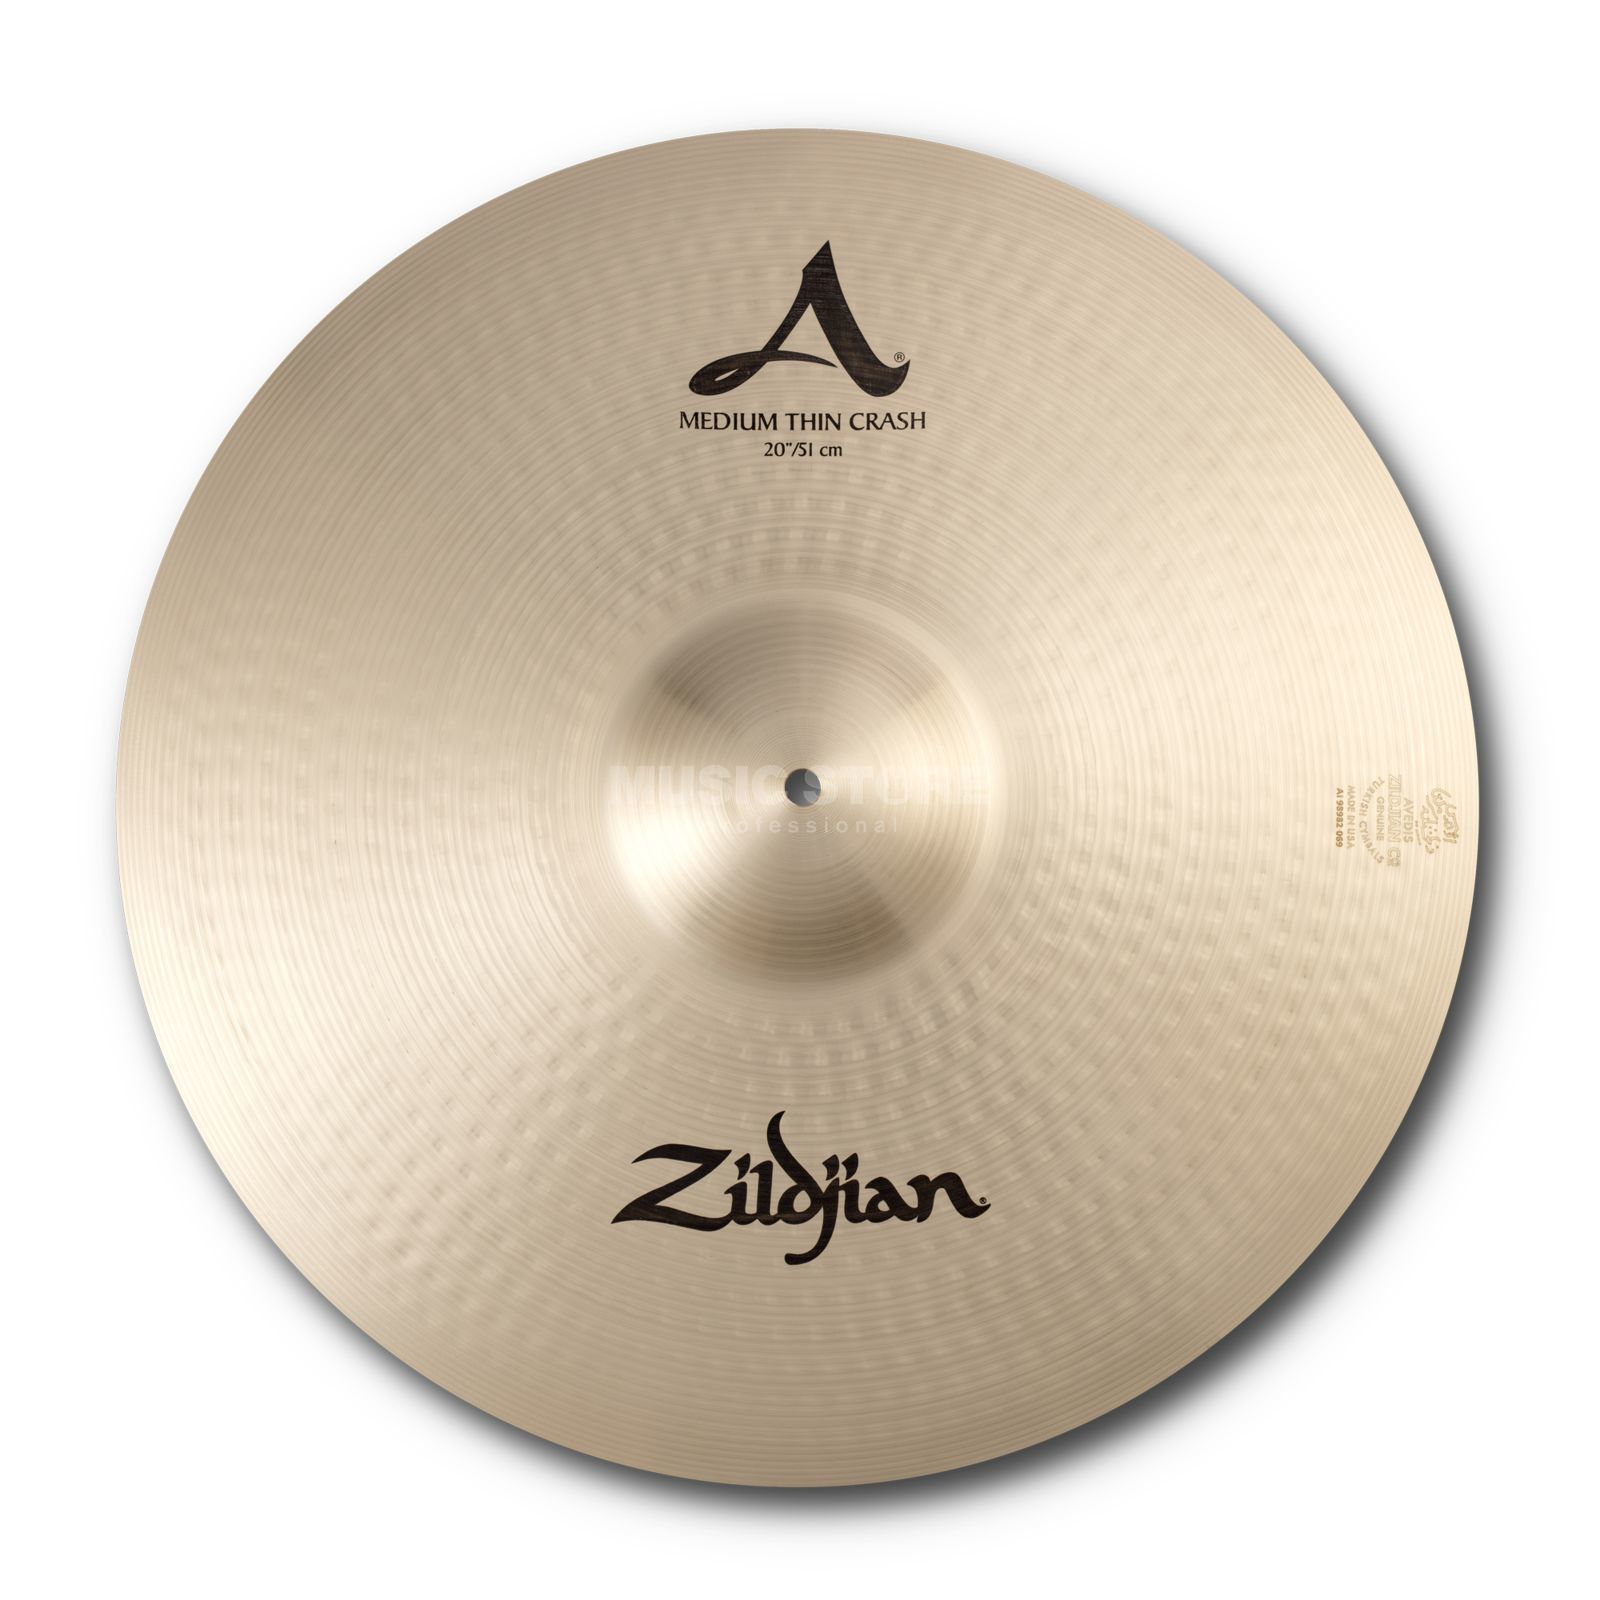 "Zildjian A' Zildjian Medium Thin Crash 20"" Produktbild"